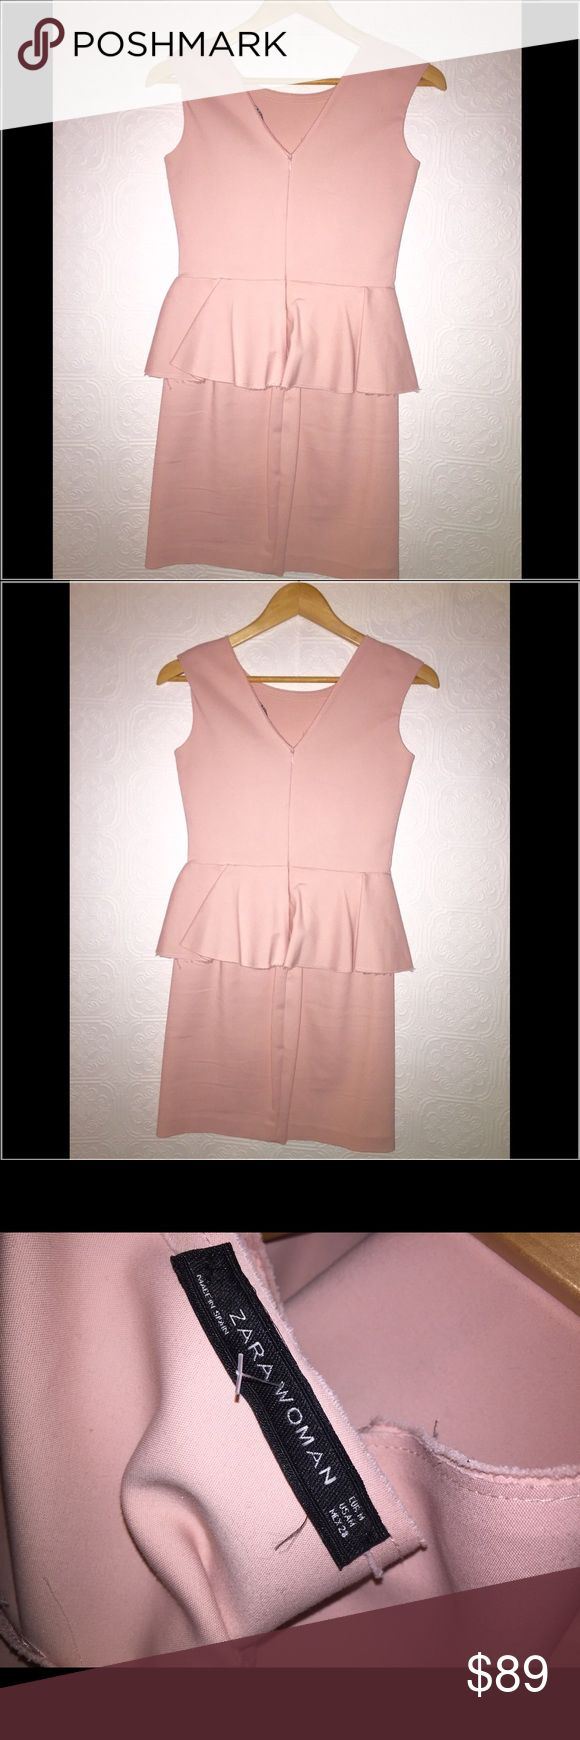 ZARA Woman NWOT awesome blush pink dress SALE‼️❤️ Beautifully made Zara dress. Side zipper  see tag pic for material. Absolutely beautiful❤️❤️❤️❗️ Final reduction✔️ Zara Dresses Midi